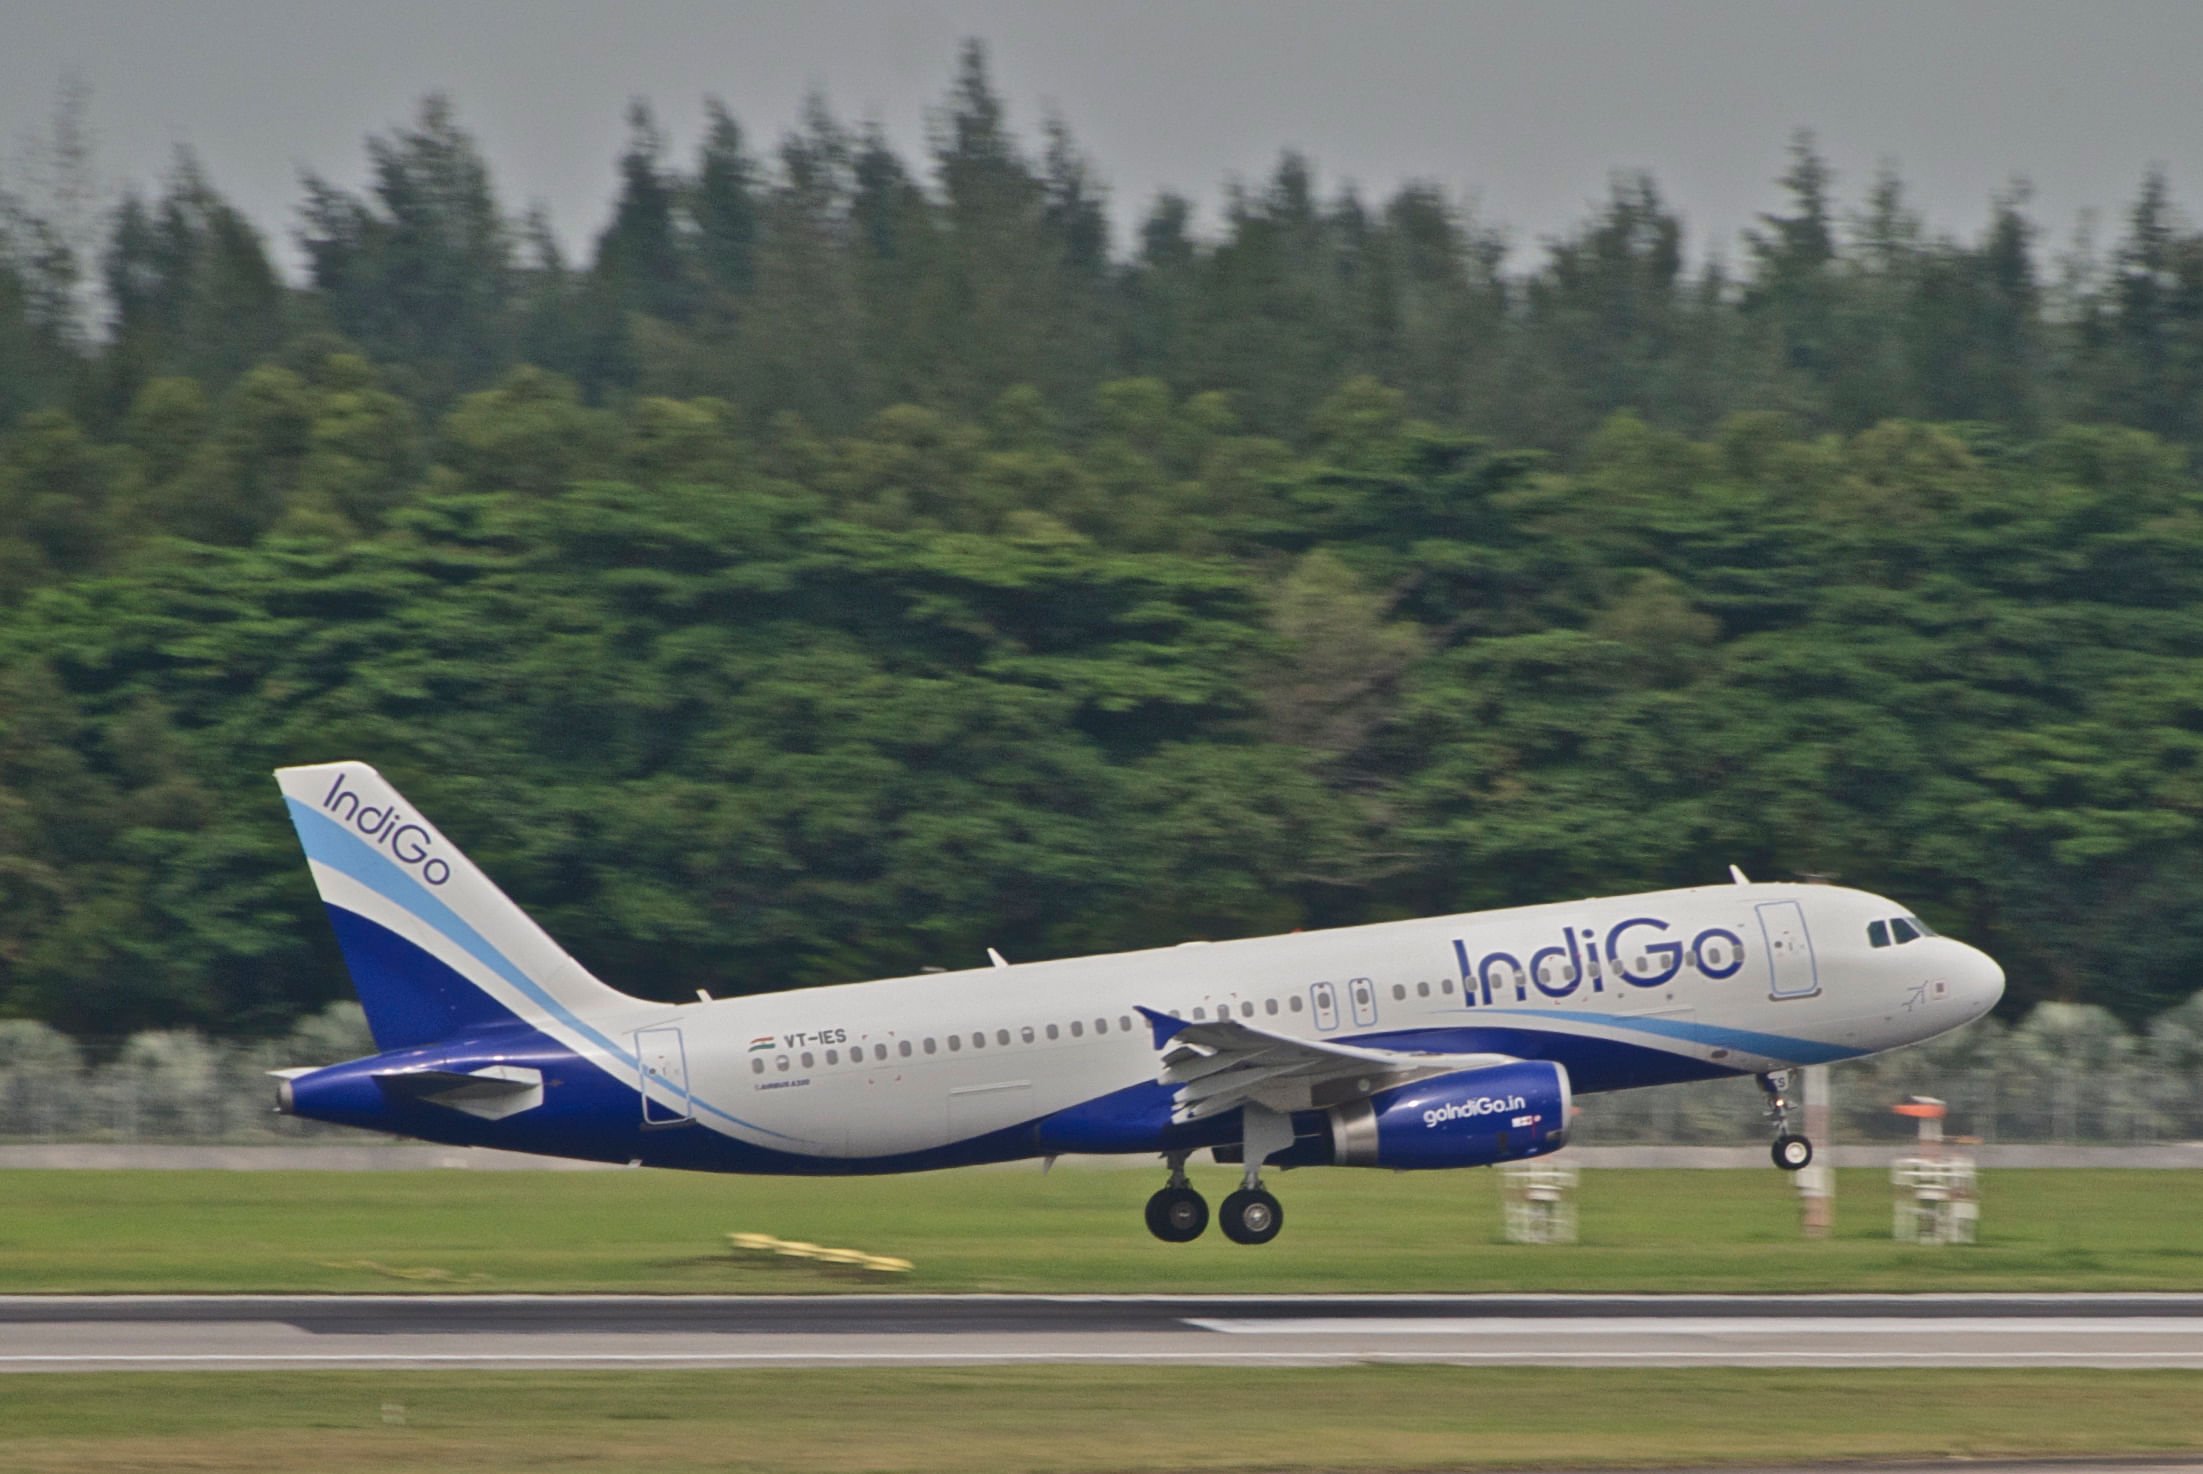 """IndiGo Airbus A320-232; VT-IES@SIN;02.08.2012 668ey (7917210650)"" by Aero Icarus from Zürich, Switzerland -"